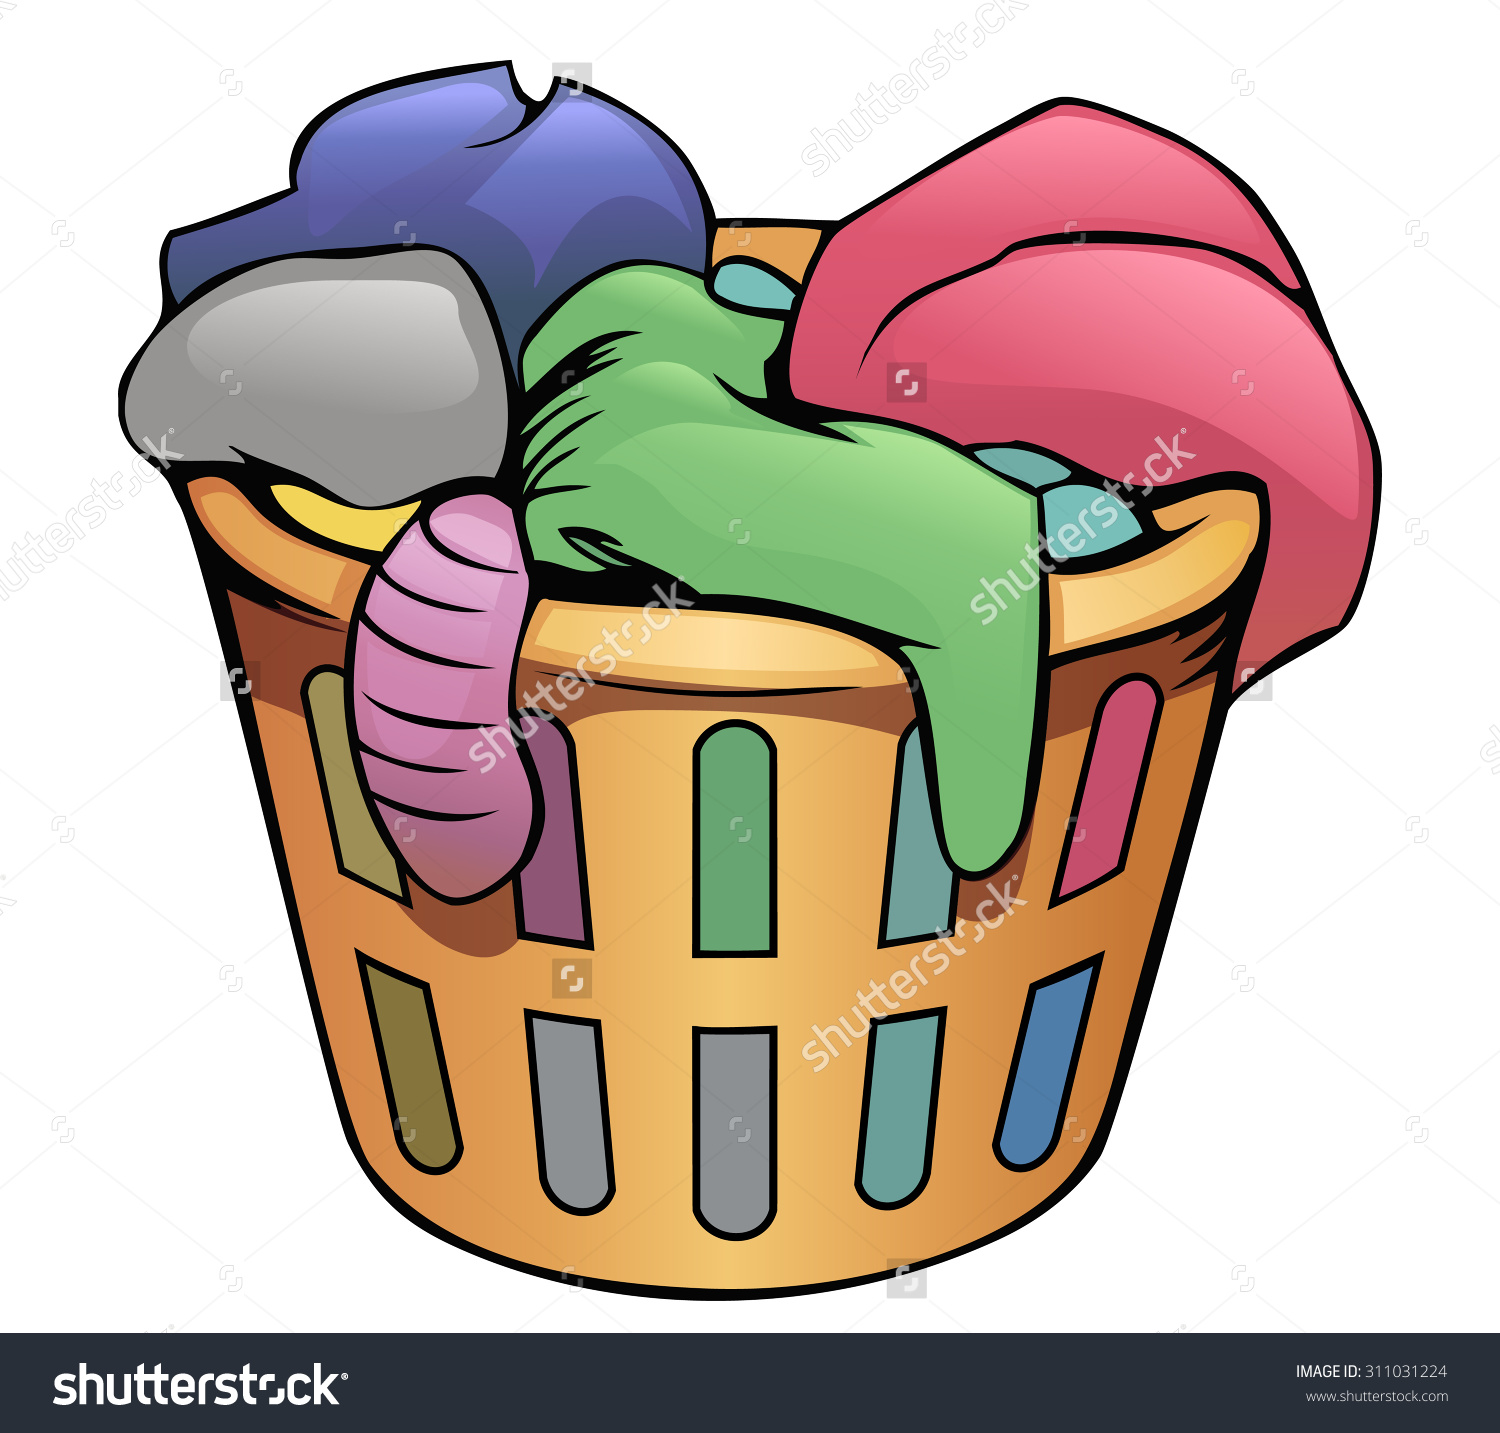 Dirty clothes basket clipart image royalty free library Clothes Hamper Clipart | Free download best Clothes Hamper Clipart ... image royalty free library